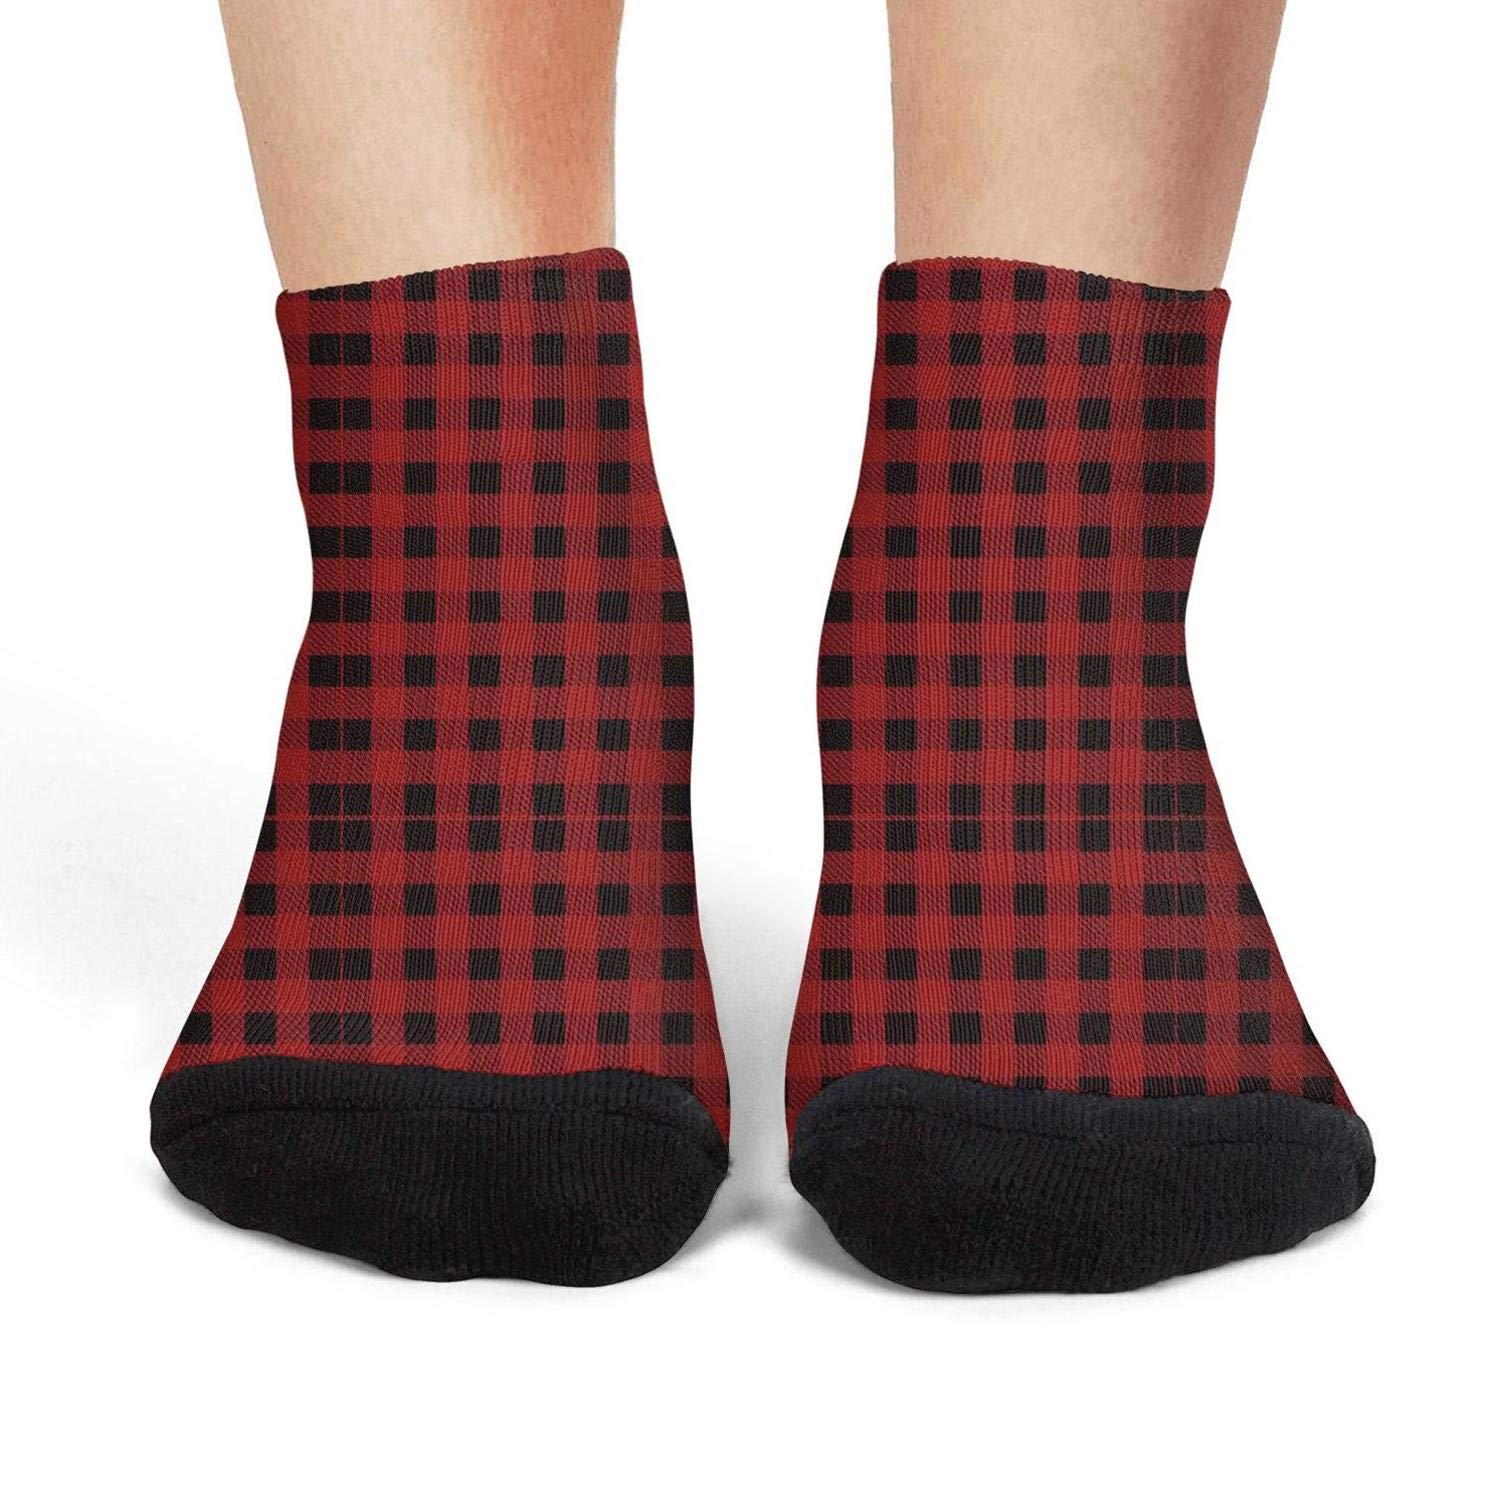 Mens athletic low cut Ankle sock red Checkered lattice panels simple patterns Non-Slip Fit Short Sock